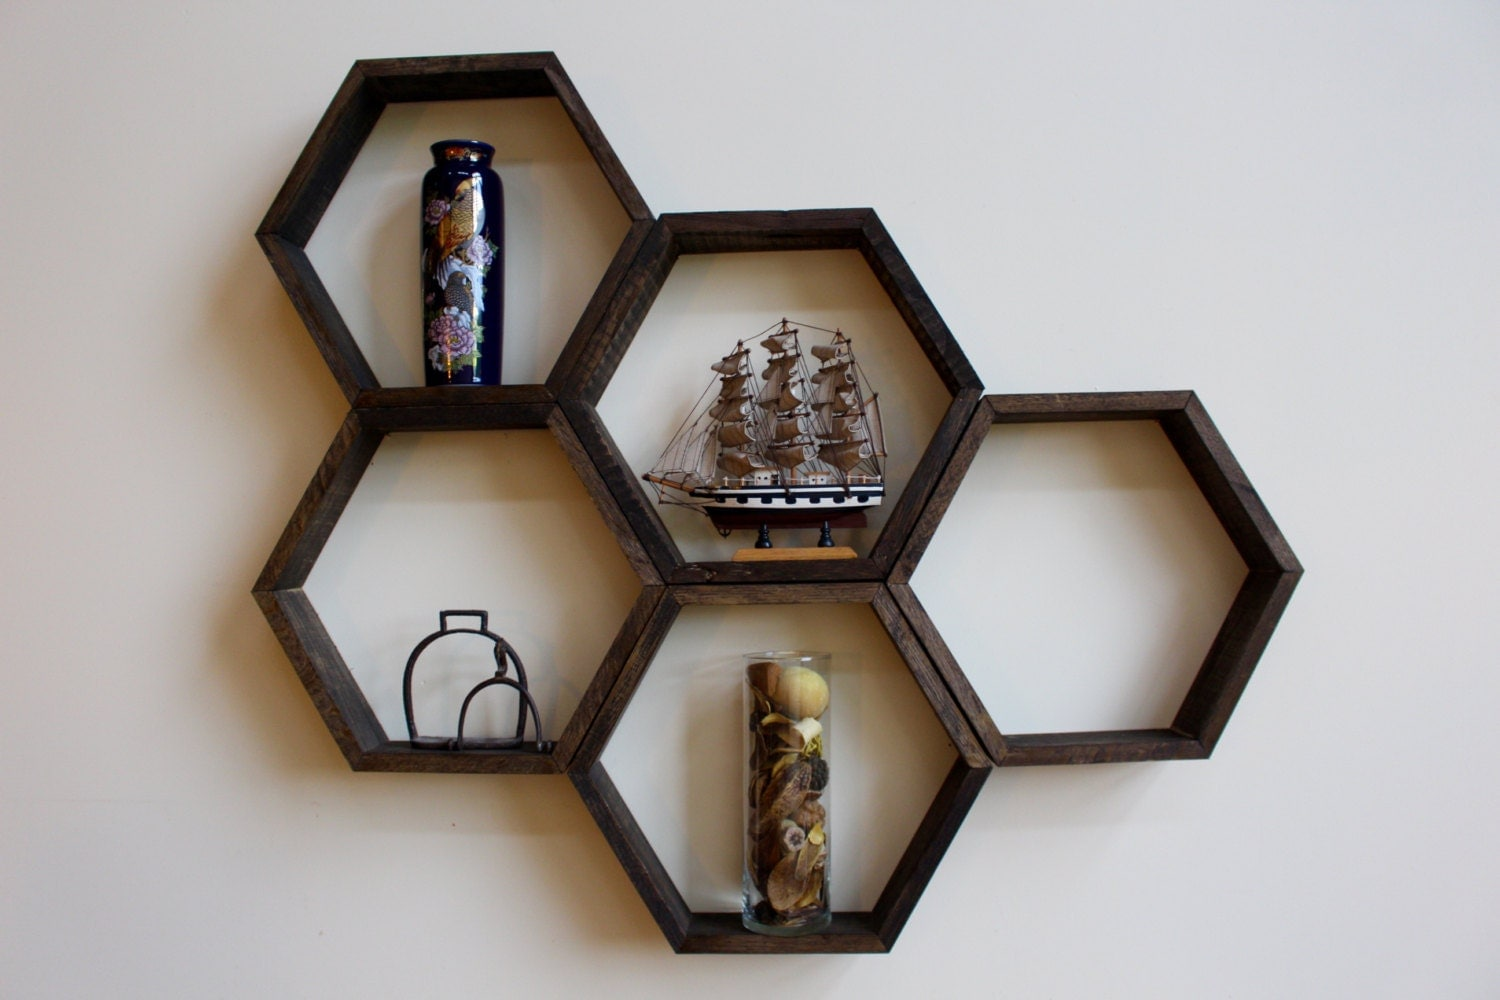 Wooden Honeycomb Hexagon Shelves Handmade Wall Decor Sets